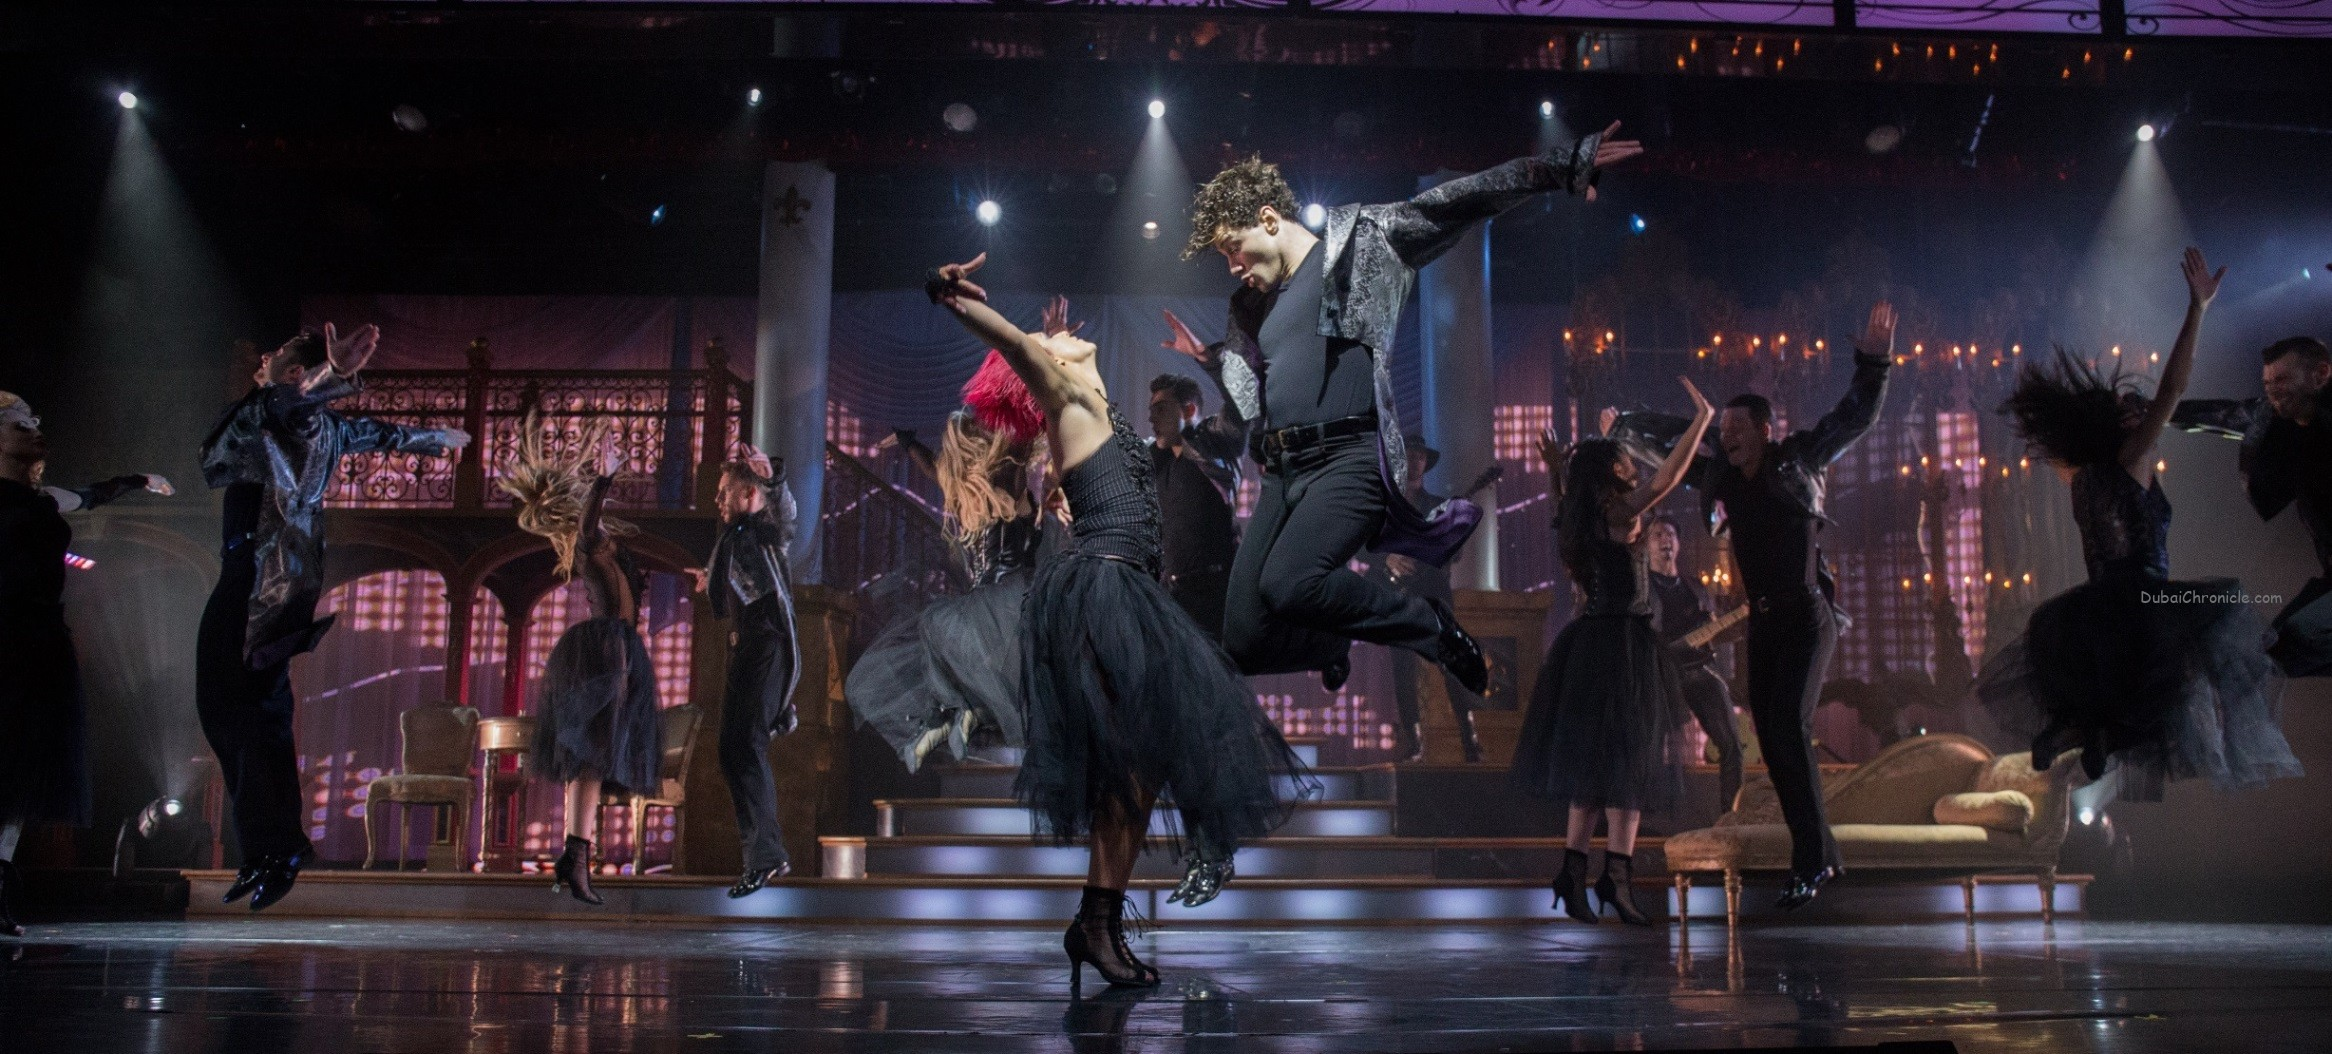 Global Village Hosts Internationally Acclaimed Burn the Floor Dance Production for The First Time in MENA Region During Season 26